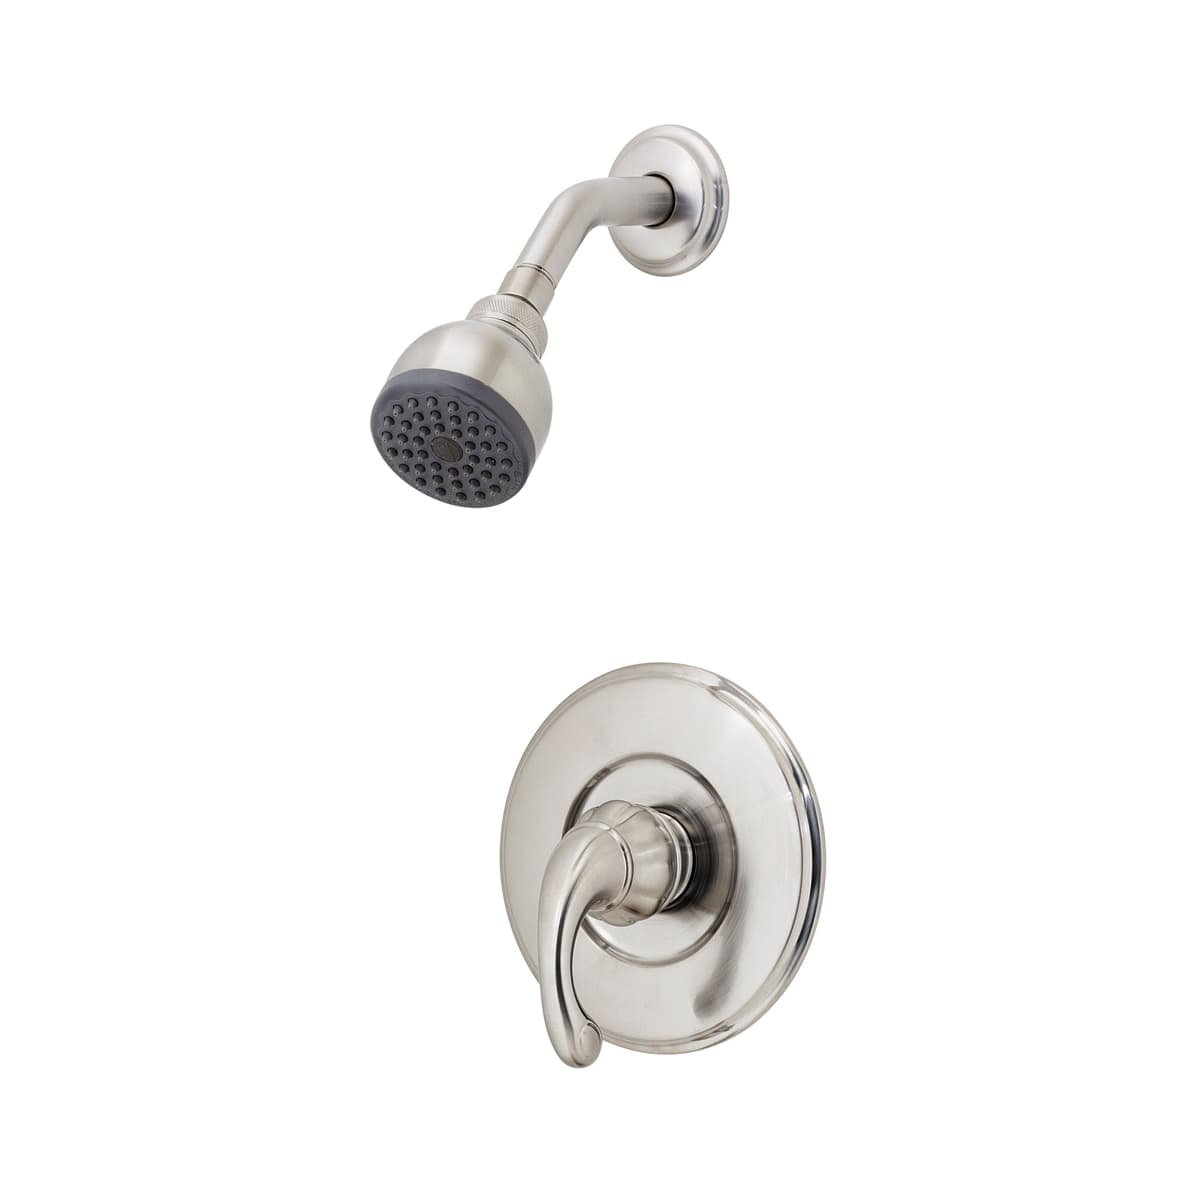 Pfister 808 5dk0 Brushed Nickel Treviso Single Handle Shower